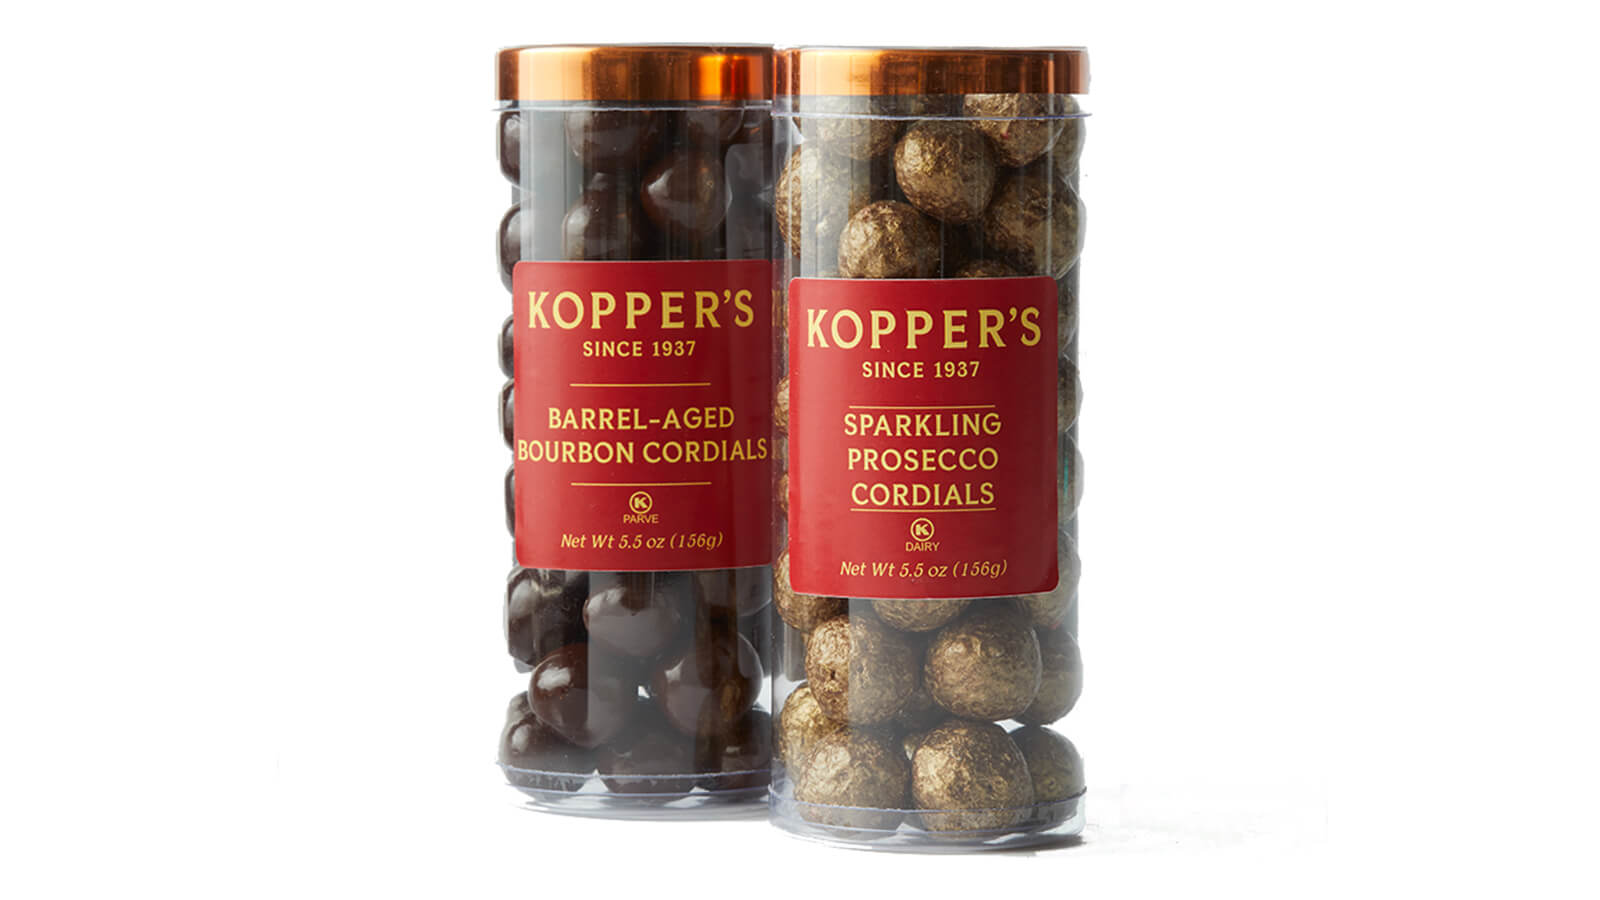 Koppers After-Dinner Cordials